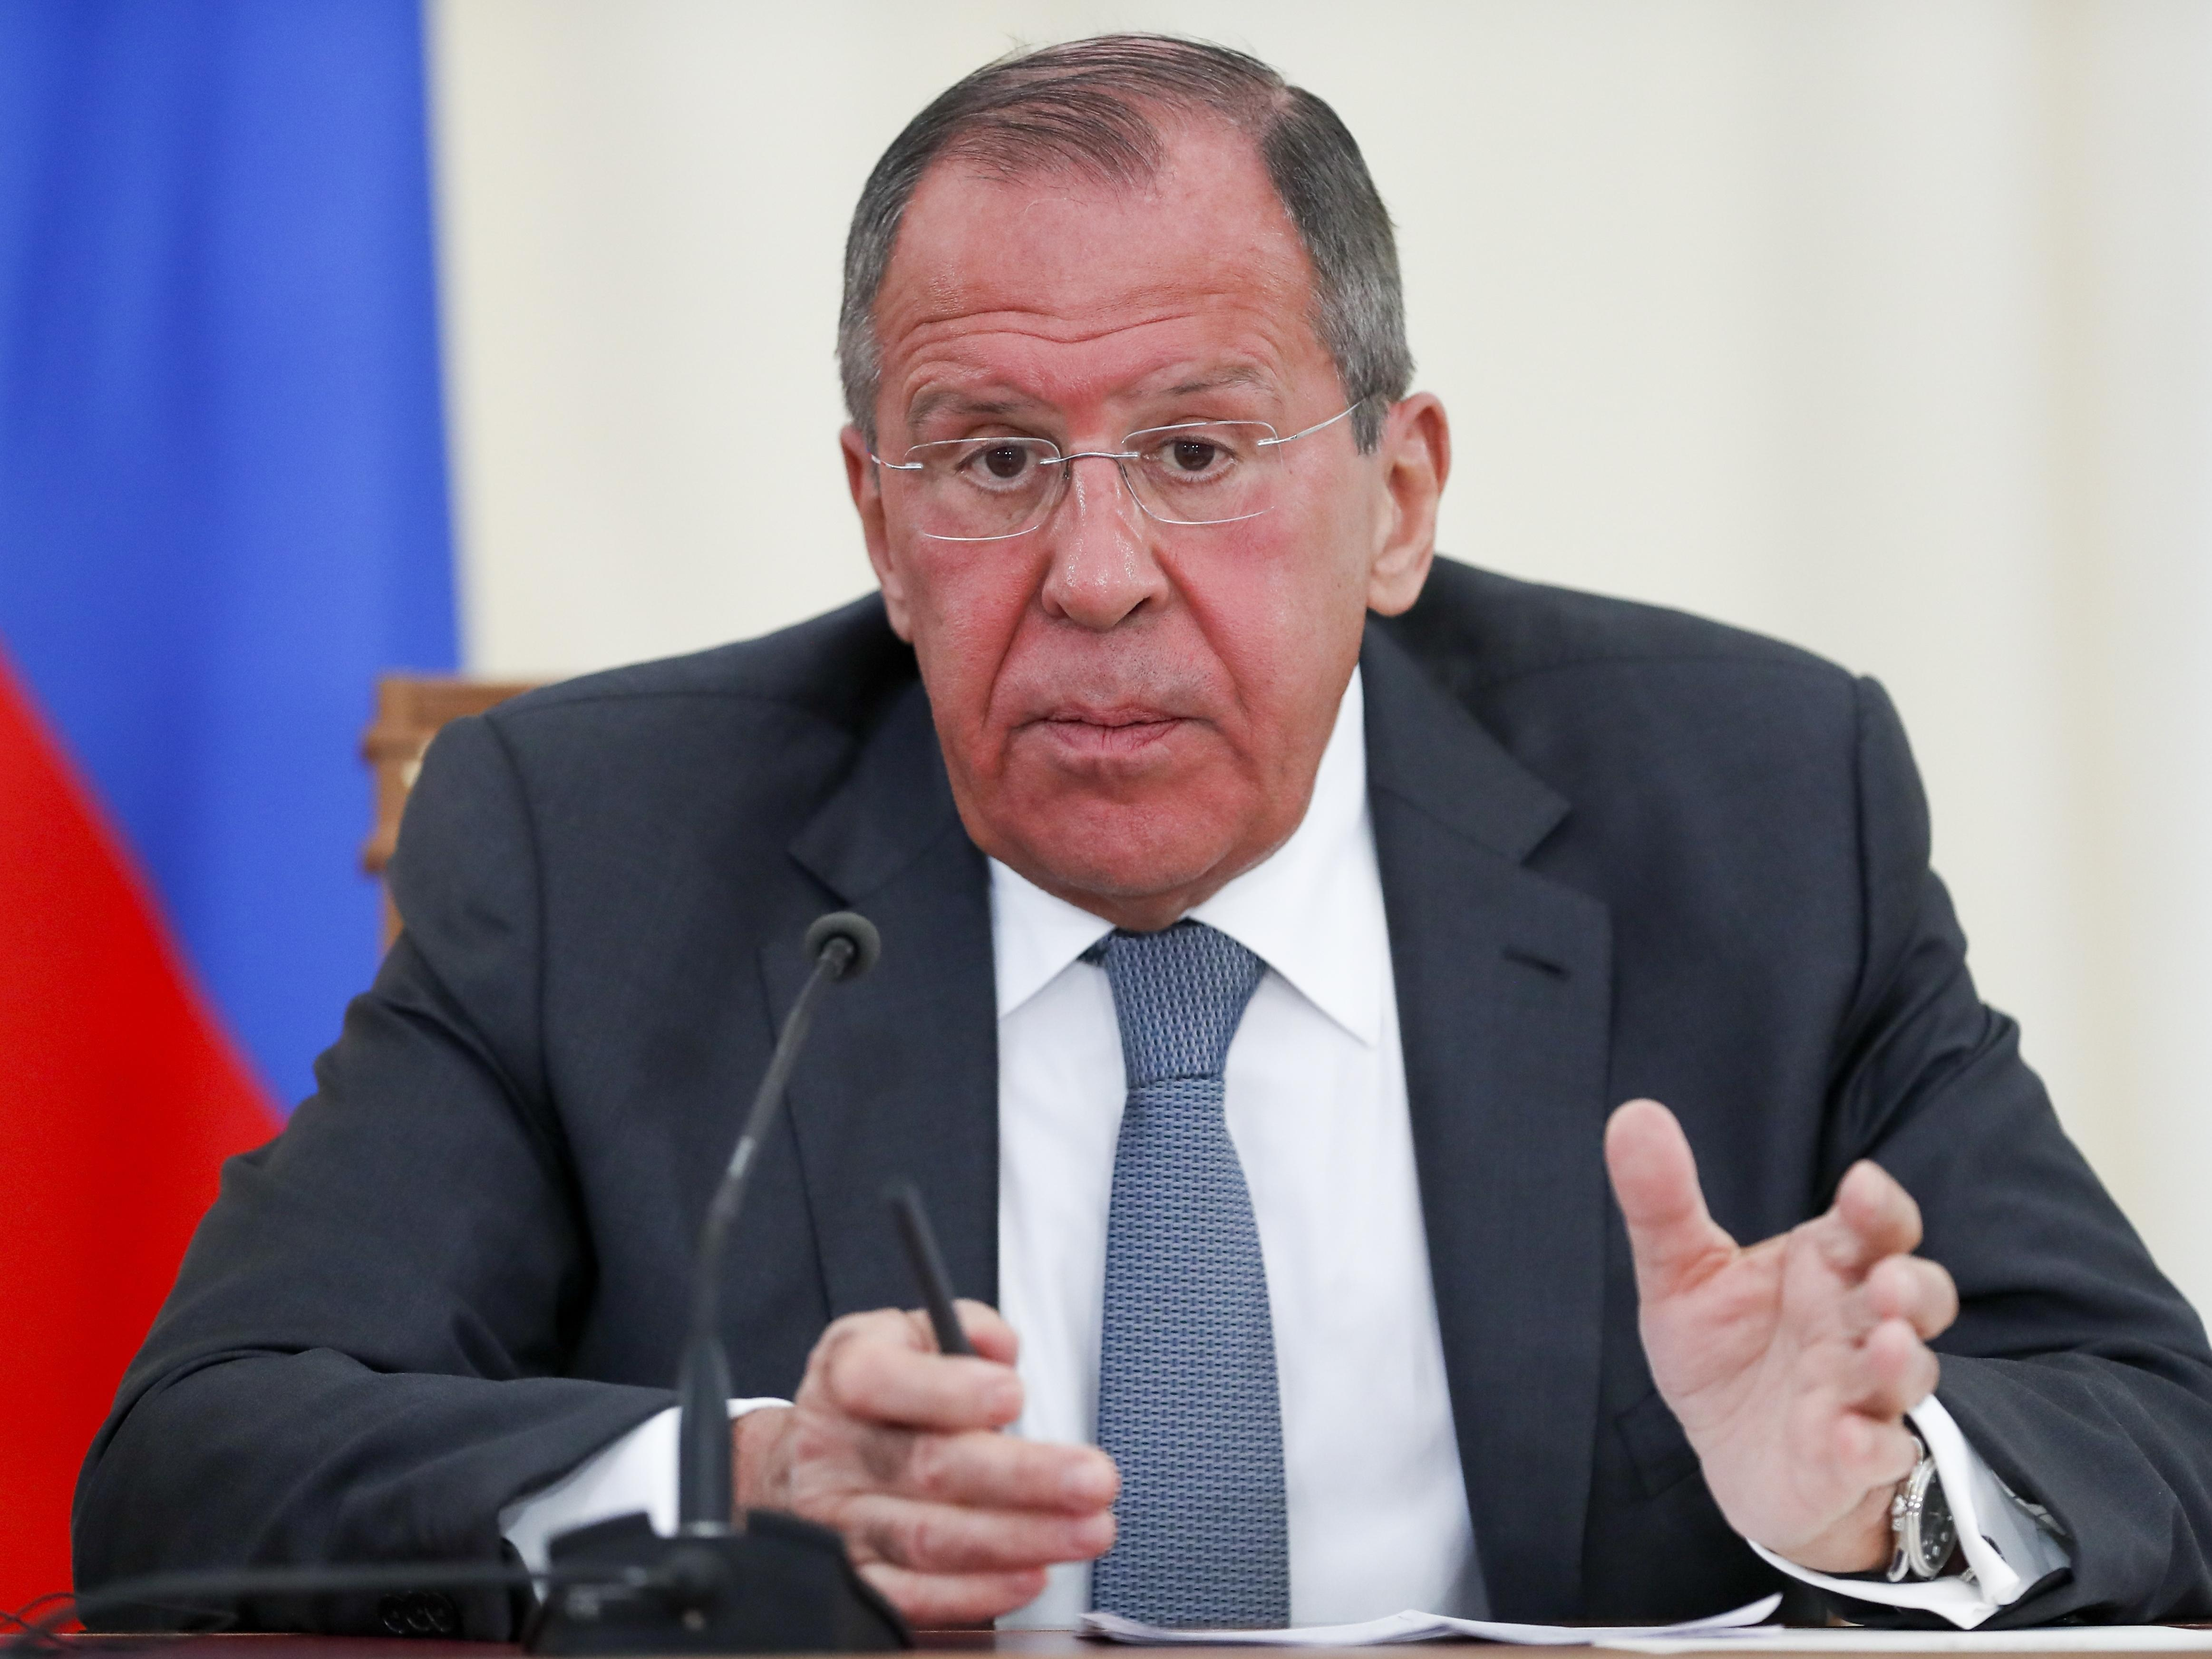 Sergey Lavrov, Russian foreign minister, says relations with U.S. unlikely to improve soon